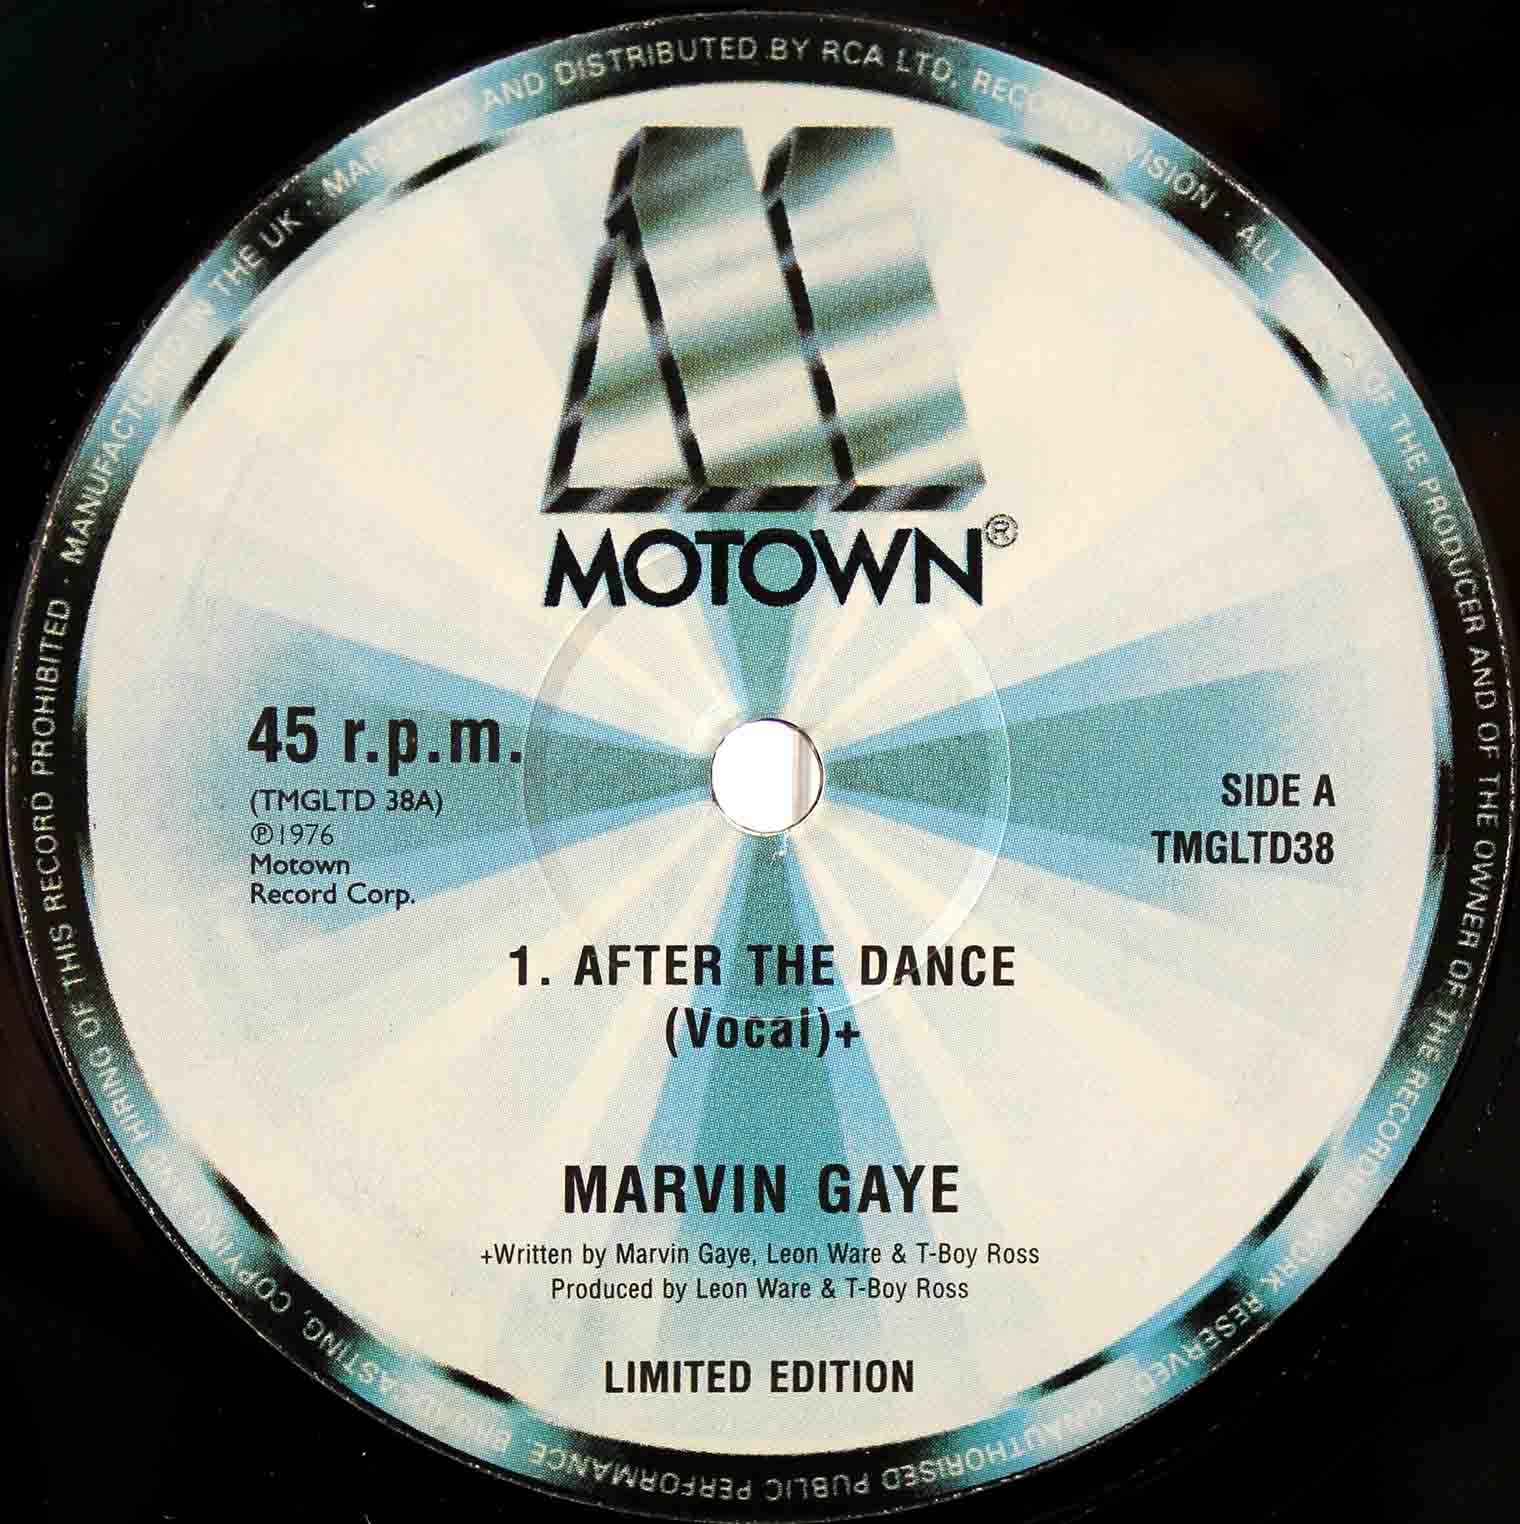 Marvin Gaye ‎– after the dance 03